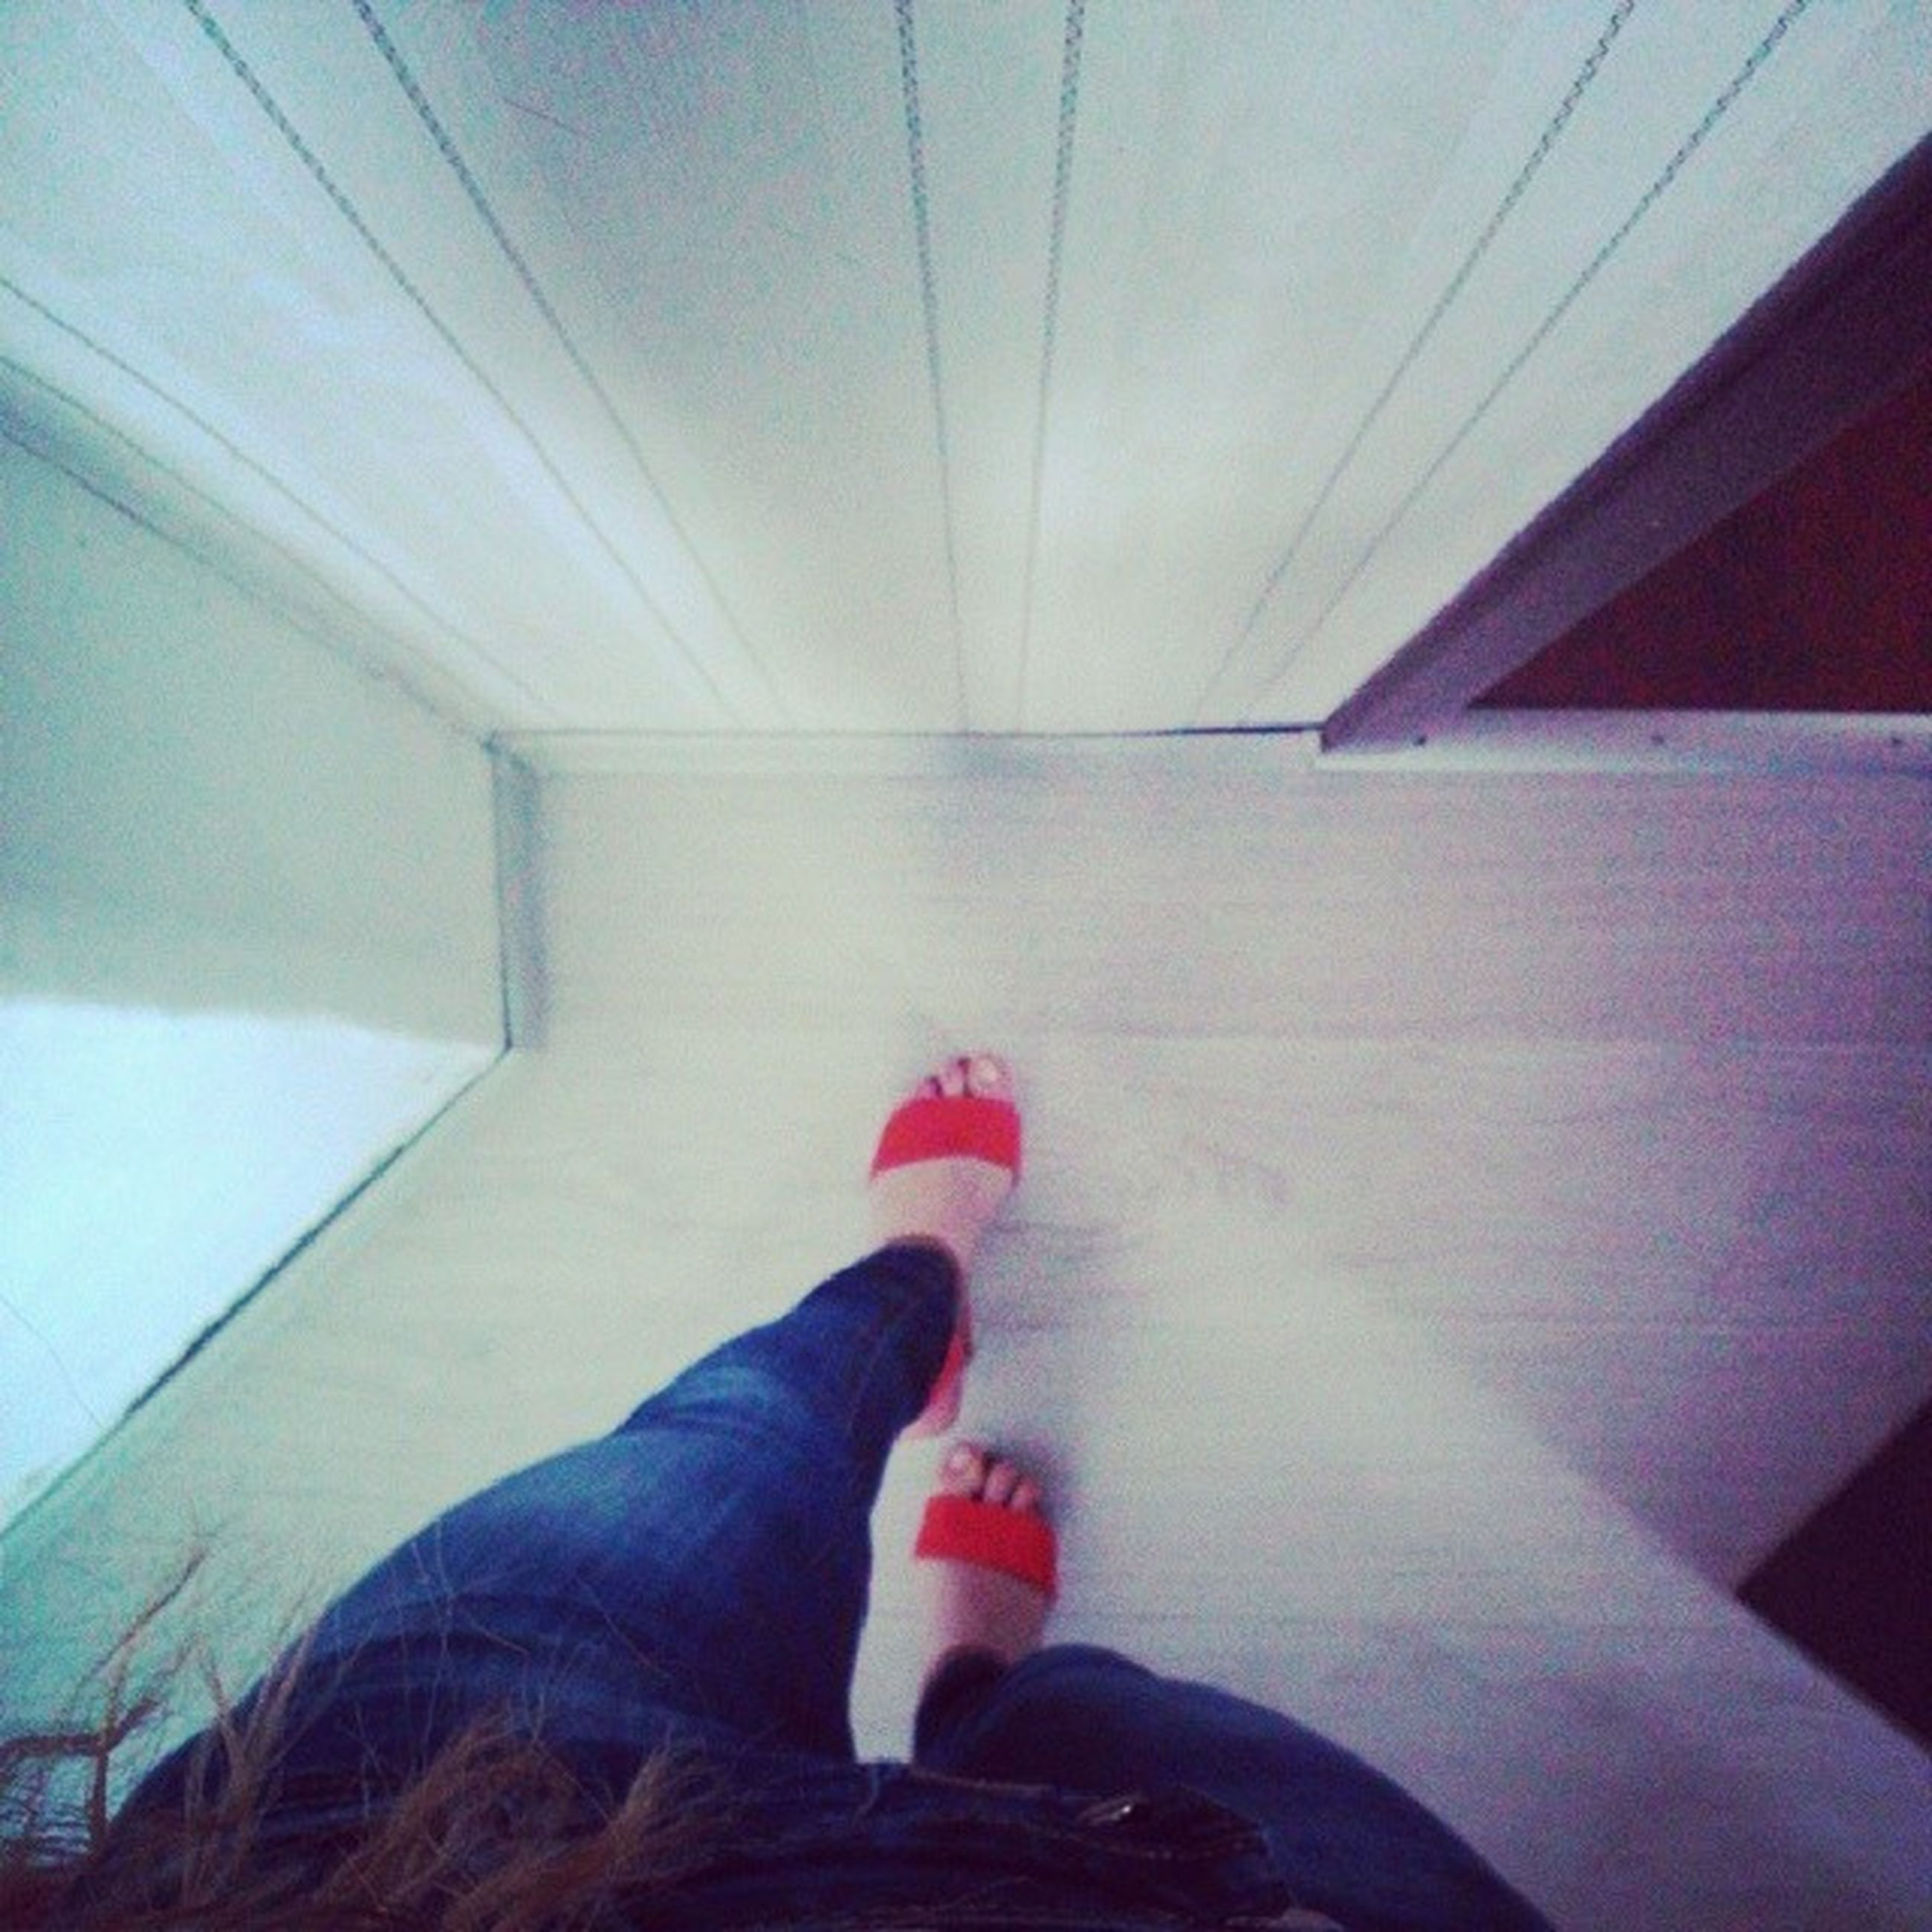 indoors, low section, person, lifestyles, built structure, architecture, leisure activity, ceiling, sunlight, blue, red, high angle view, modern, day, human foot, standing, flooring